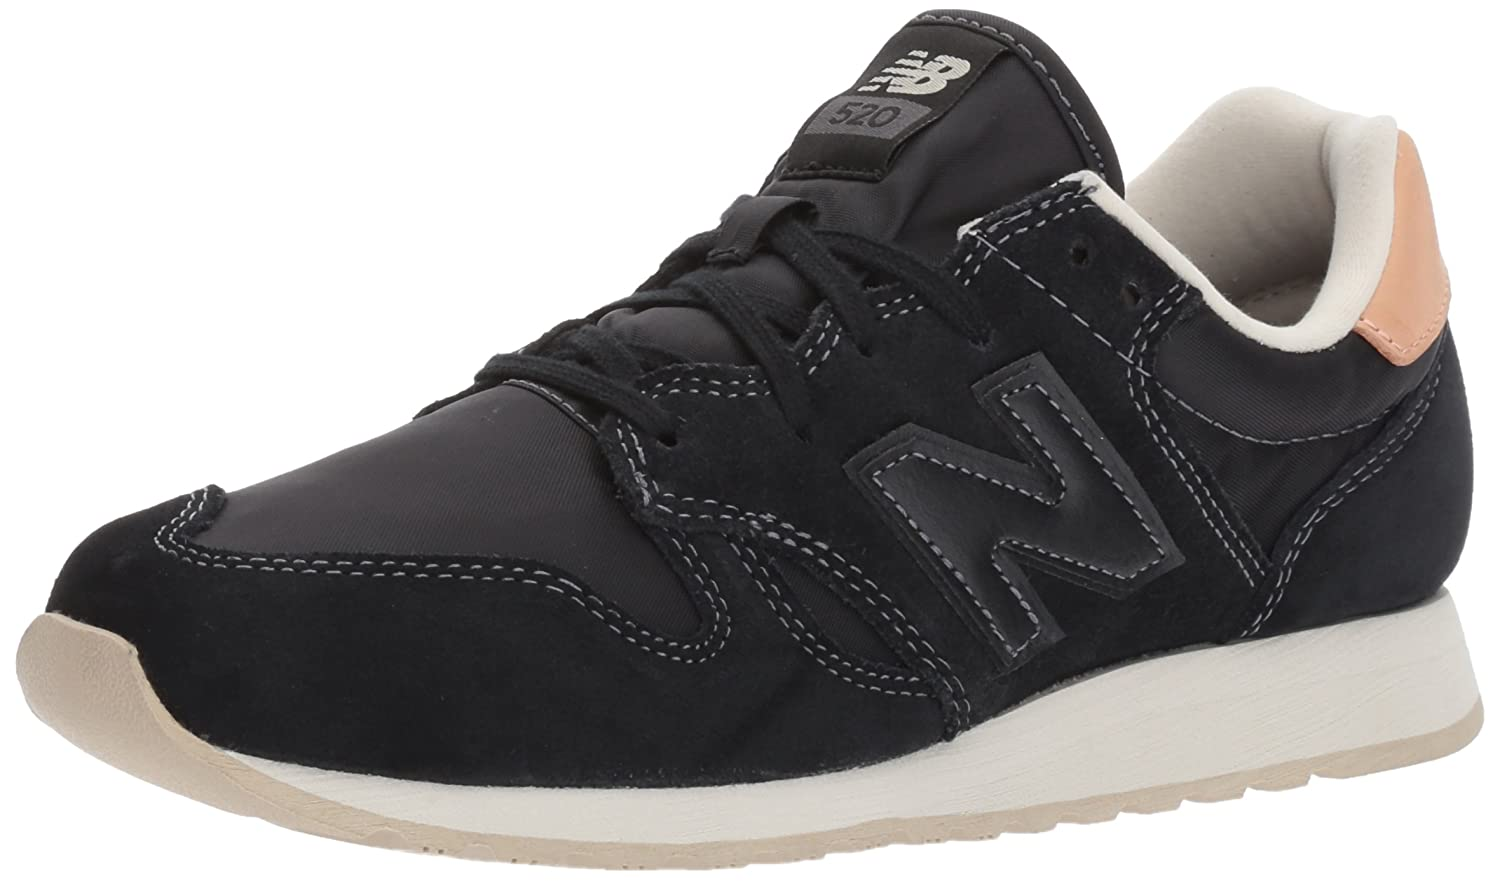 New Balance Women's 520v1 Sneaker B01MSOSSJG 7.5 B(M) US|Black/Phantom